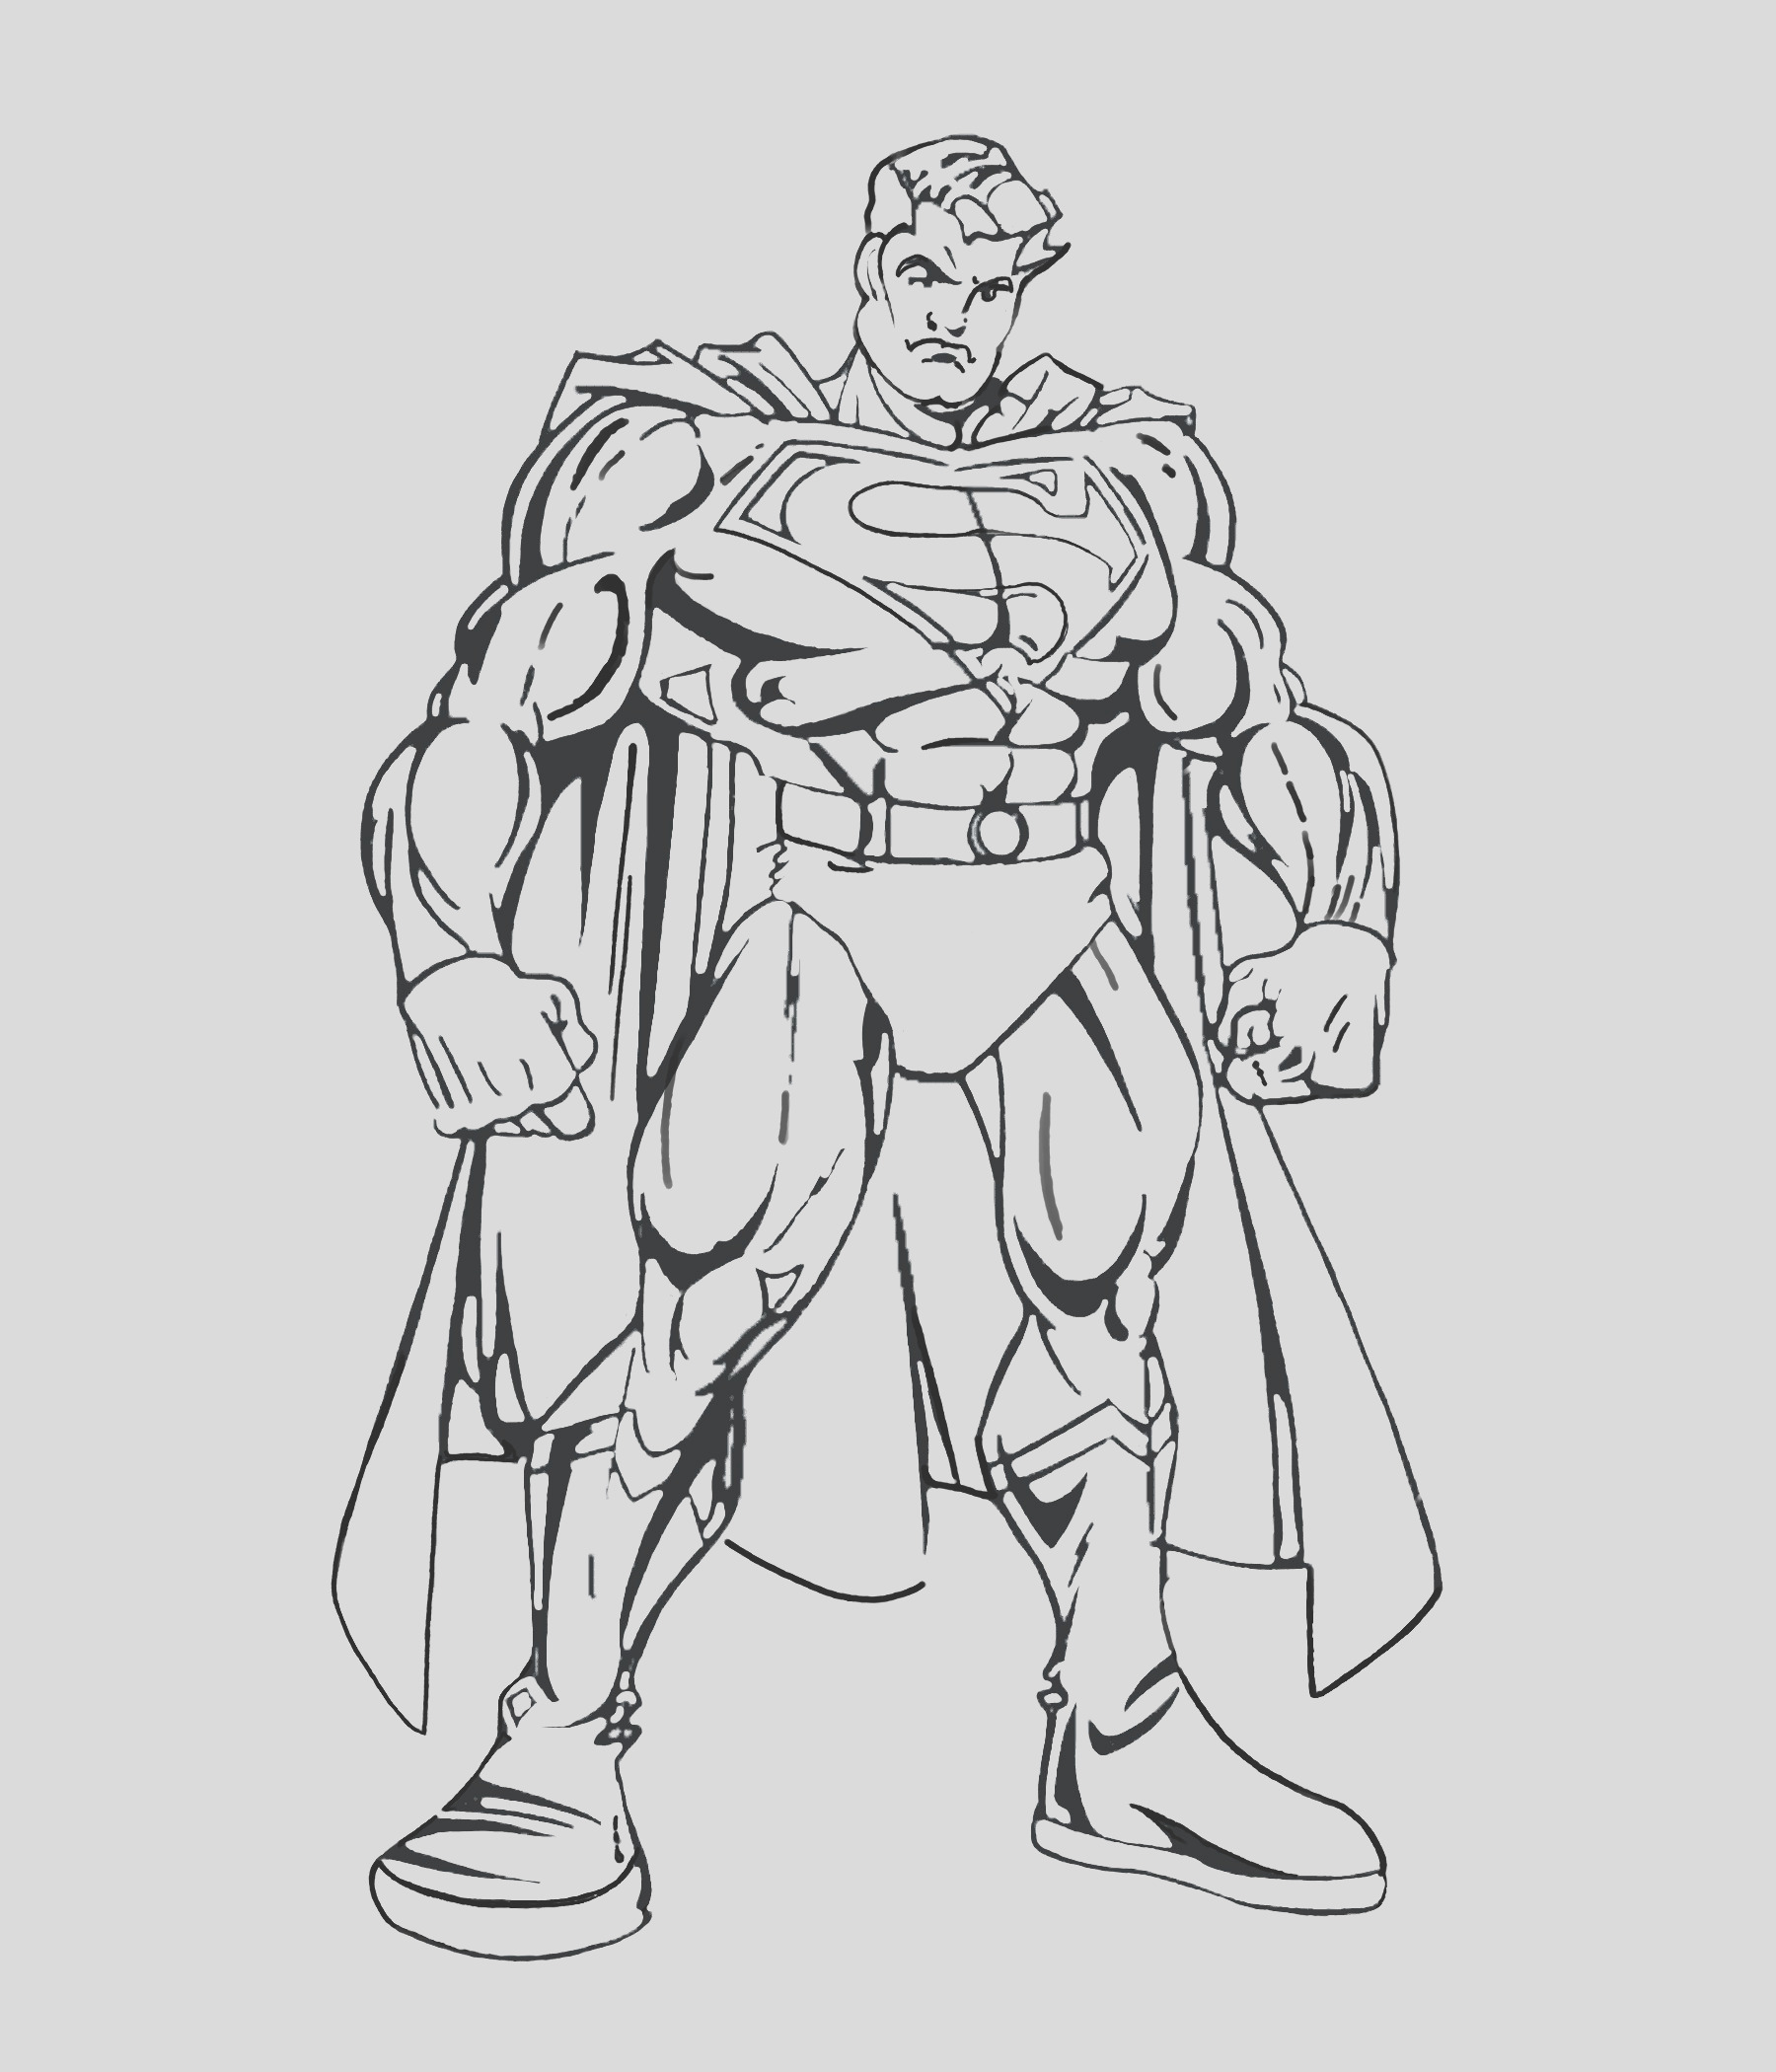 image=superman Coloring for kids superman 1